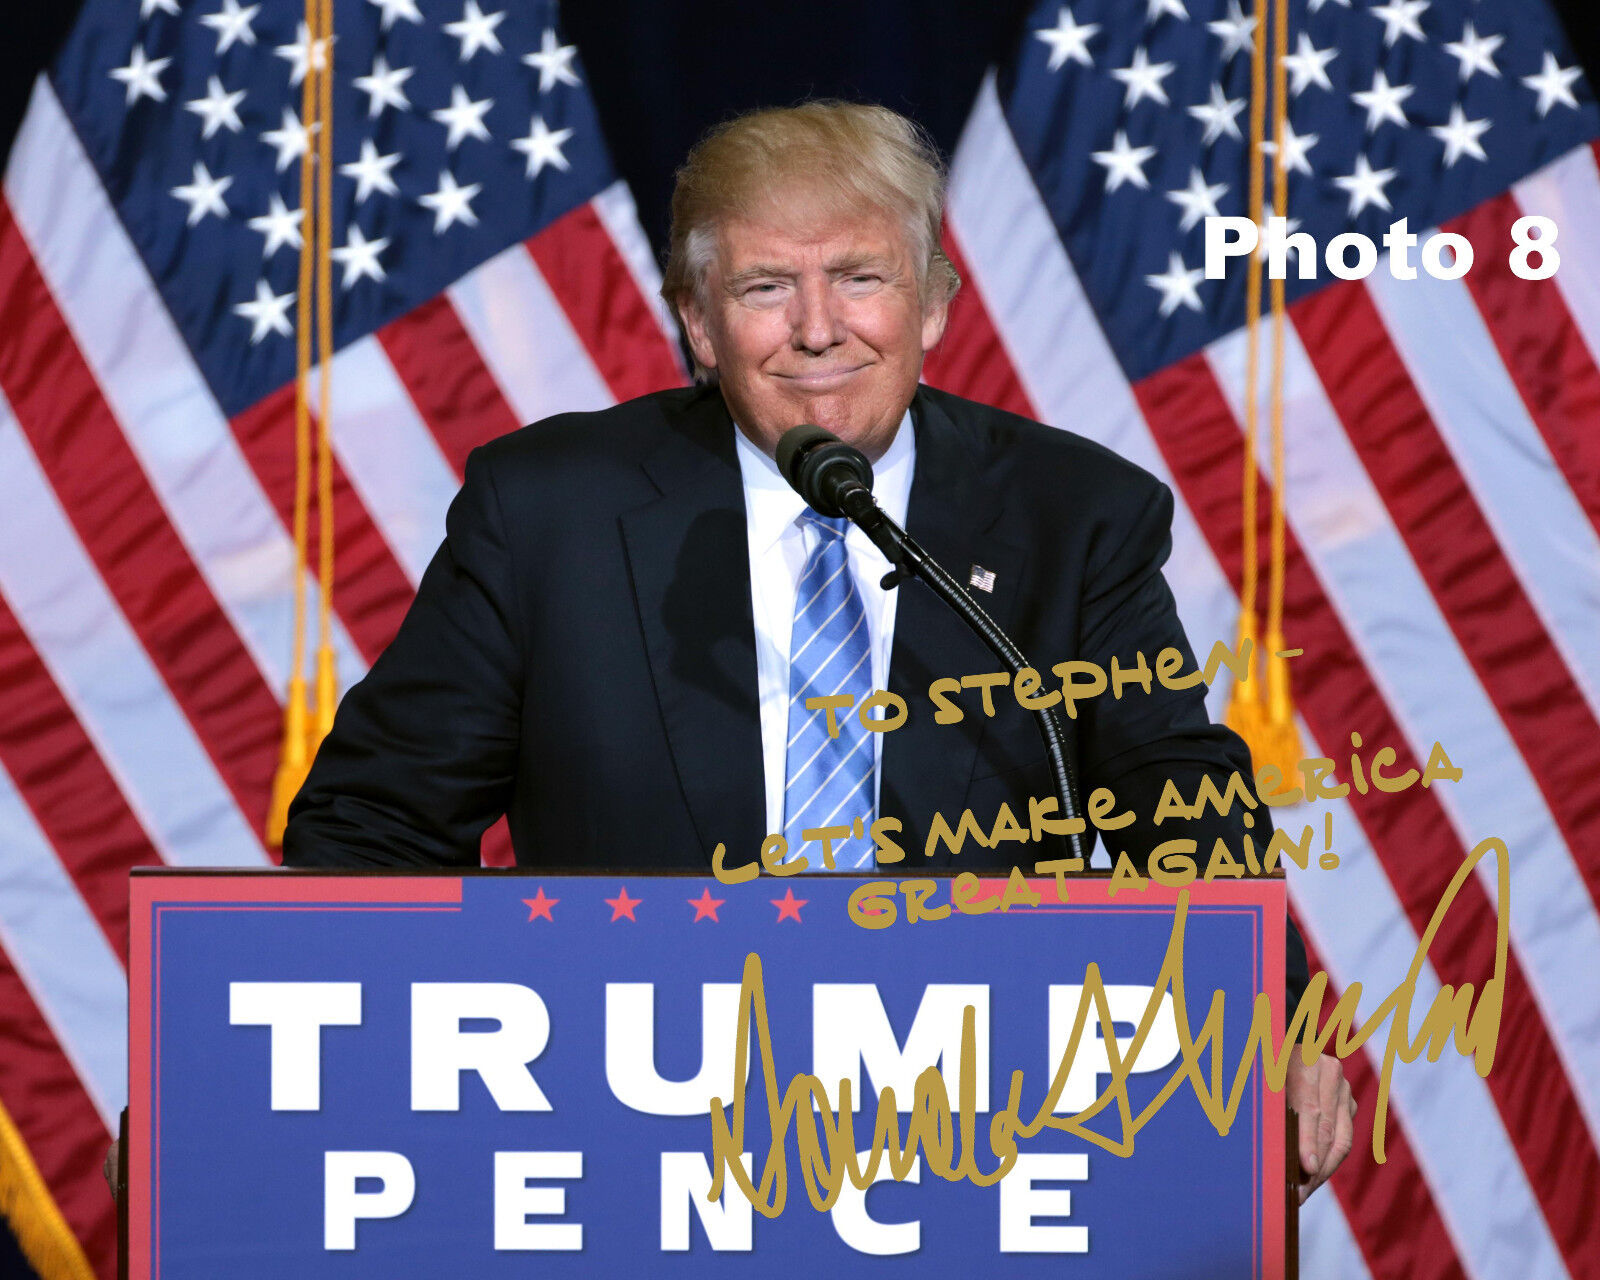 Customized President Donald Trump Gold Autographed 8x10 Photo - FREE SHIPPING!